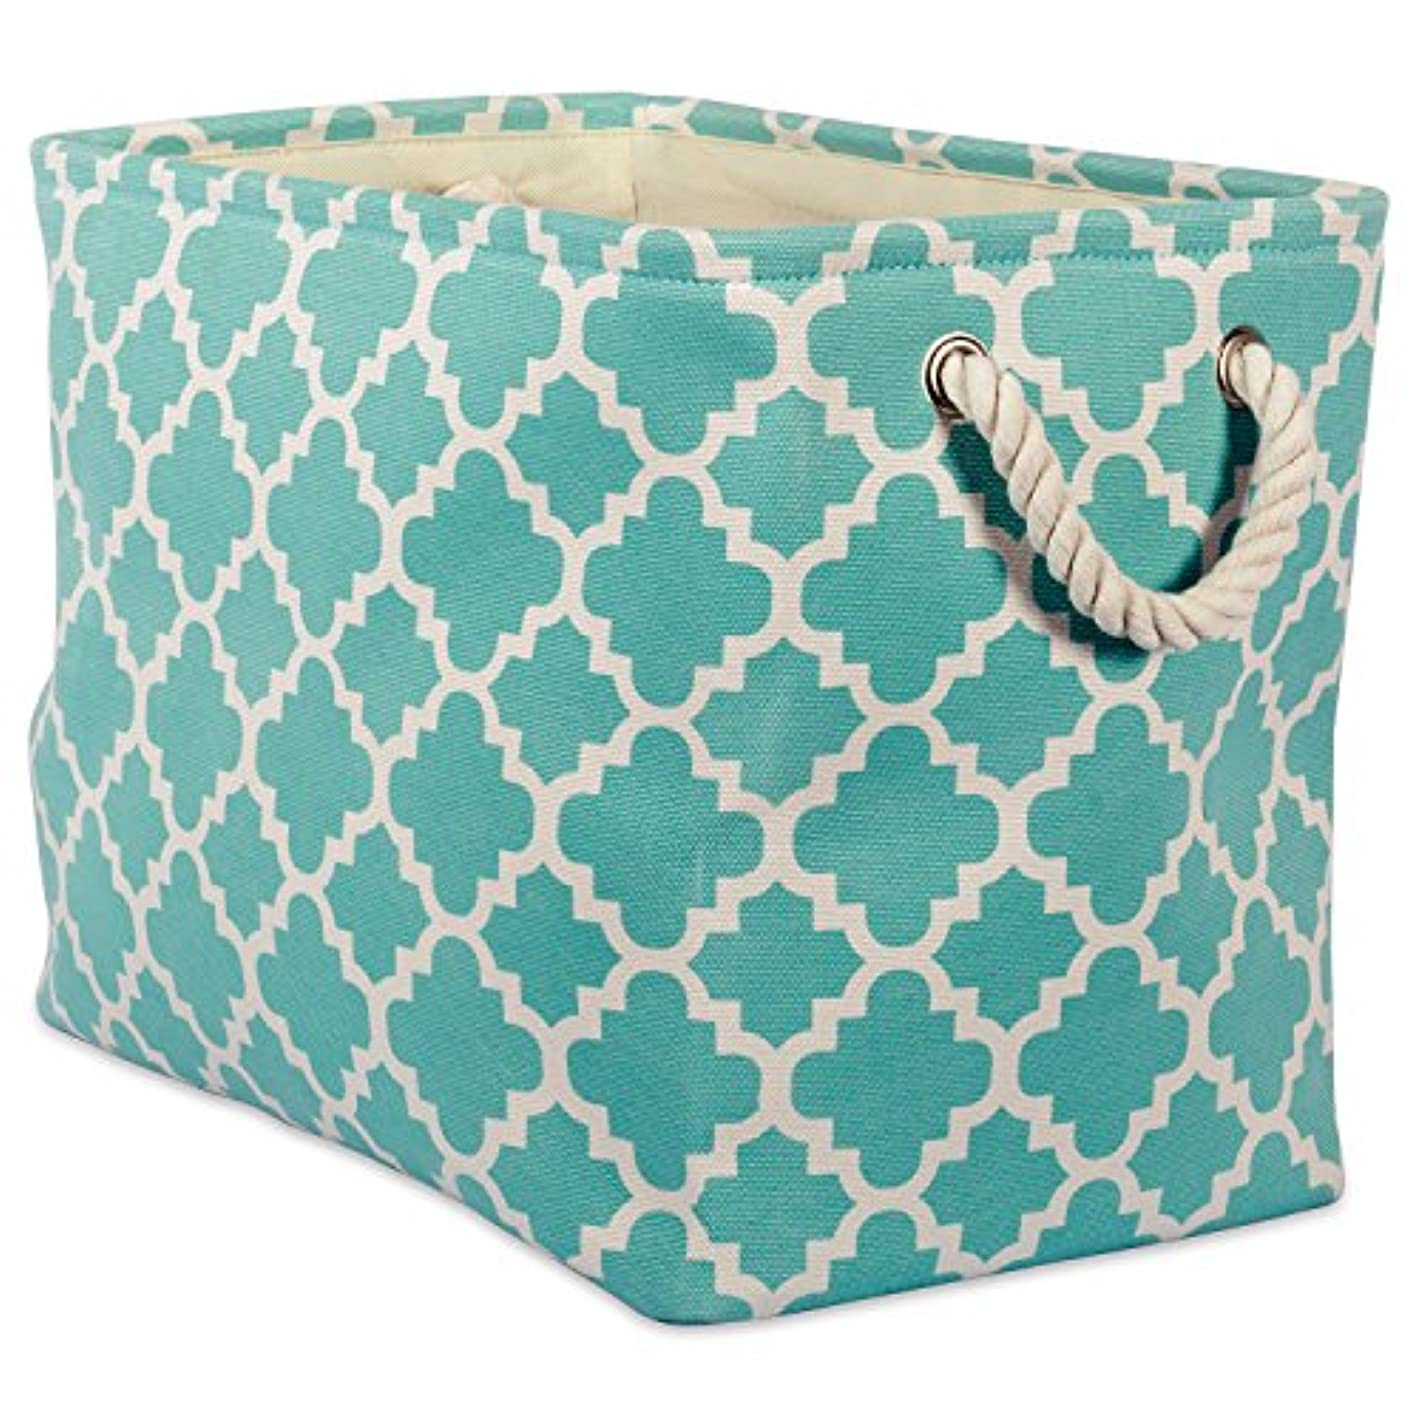 DII Printed Polyester, Collapsible and Convenient Storage Bin to Organize Office, Bedroom, Closet, Kid's Toys, Laundry ?- ?- Small Rectangle, Aqua Lattice,